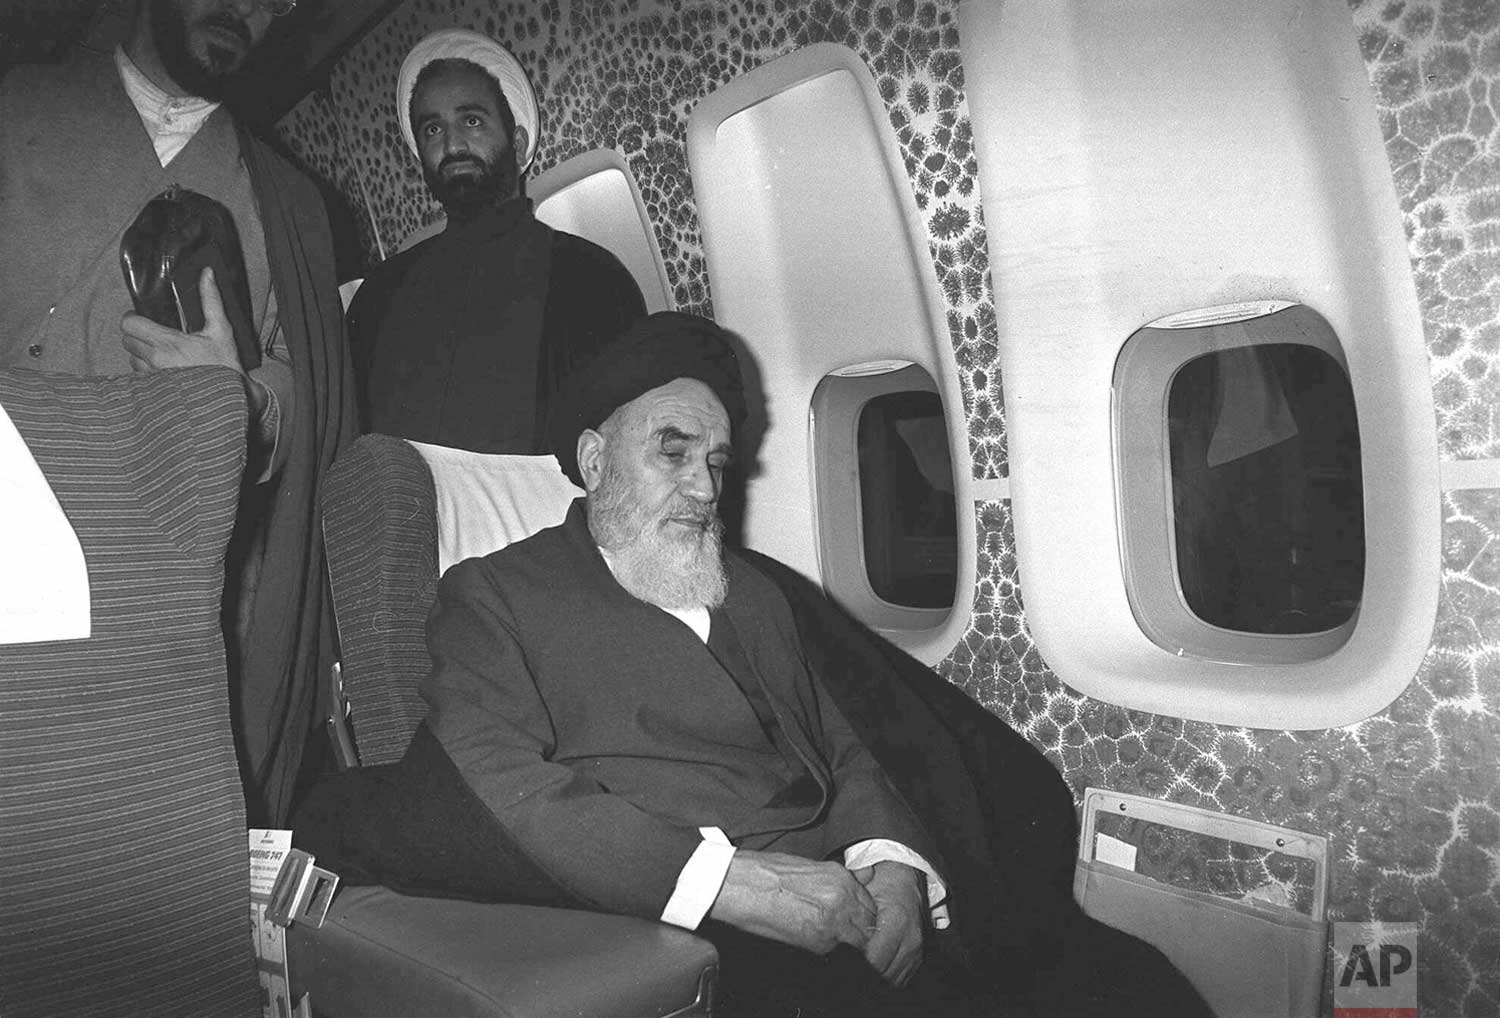 In this Feb. 1, 1979 photograph, Ayatollah Ruhollah Khomeini sits inside the chartered airplane which will fly him back to Iran, a few minutes before the plane took off from Paris, France. (AP Photo/Campion)